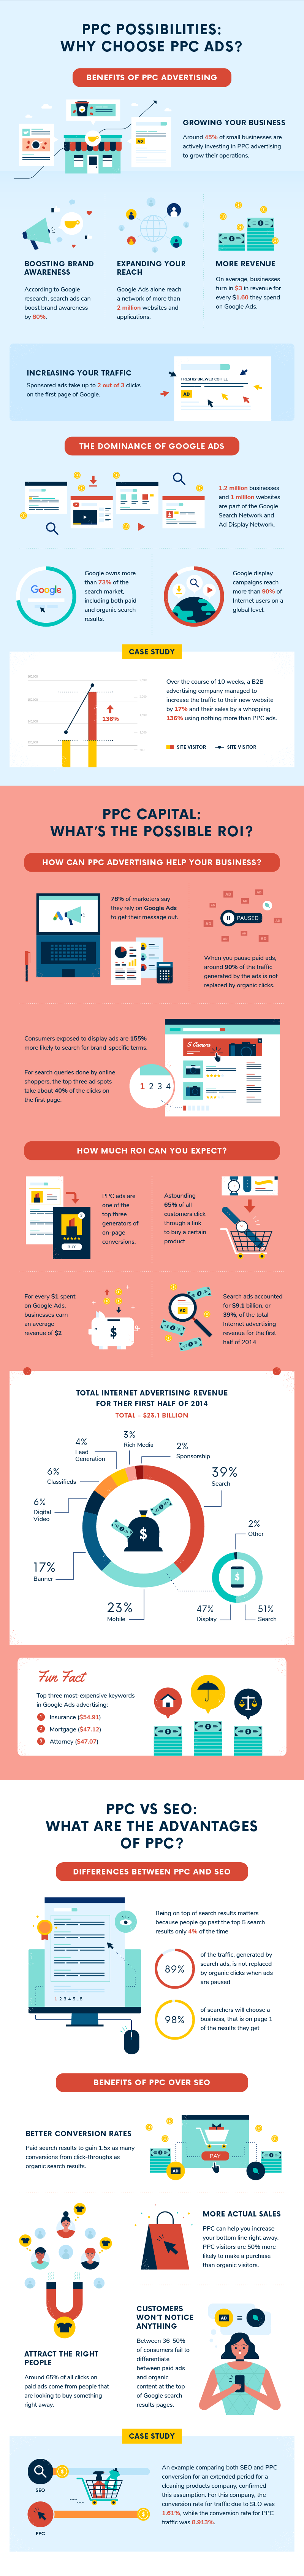 why choose ppc ads?